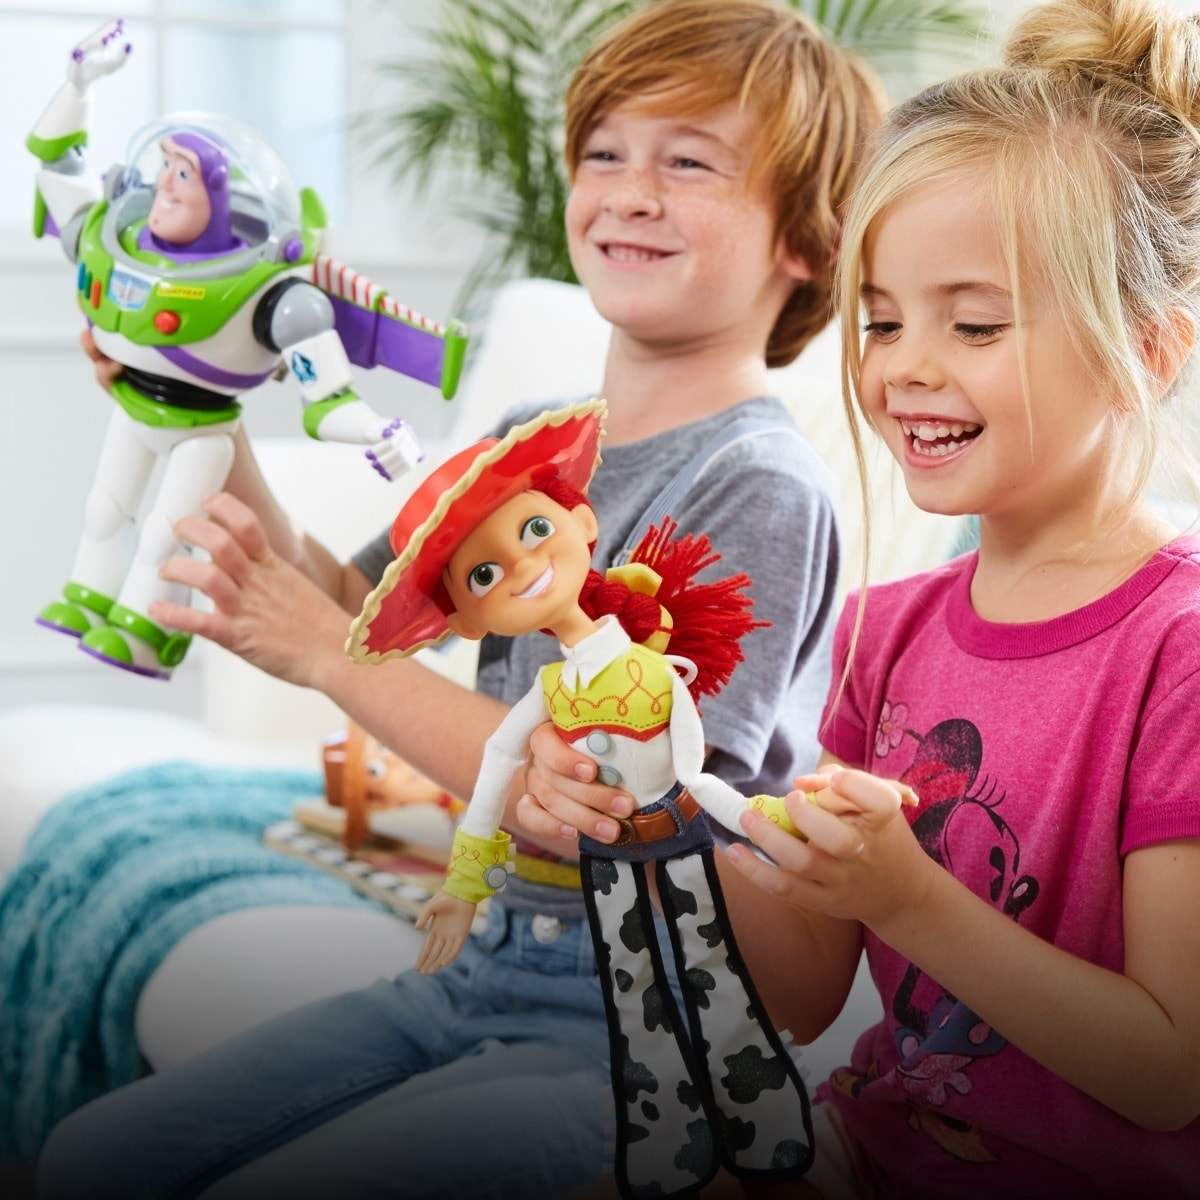 Disney Store | Le don de l'imagination